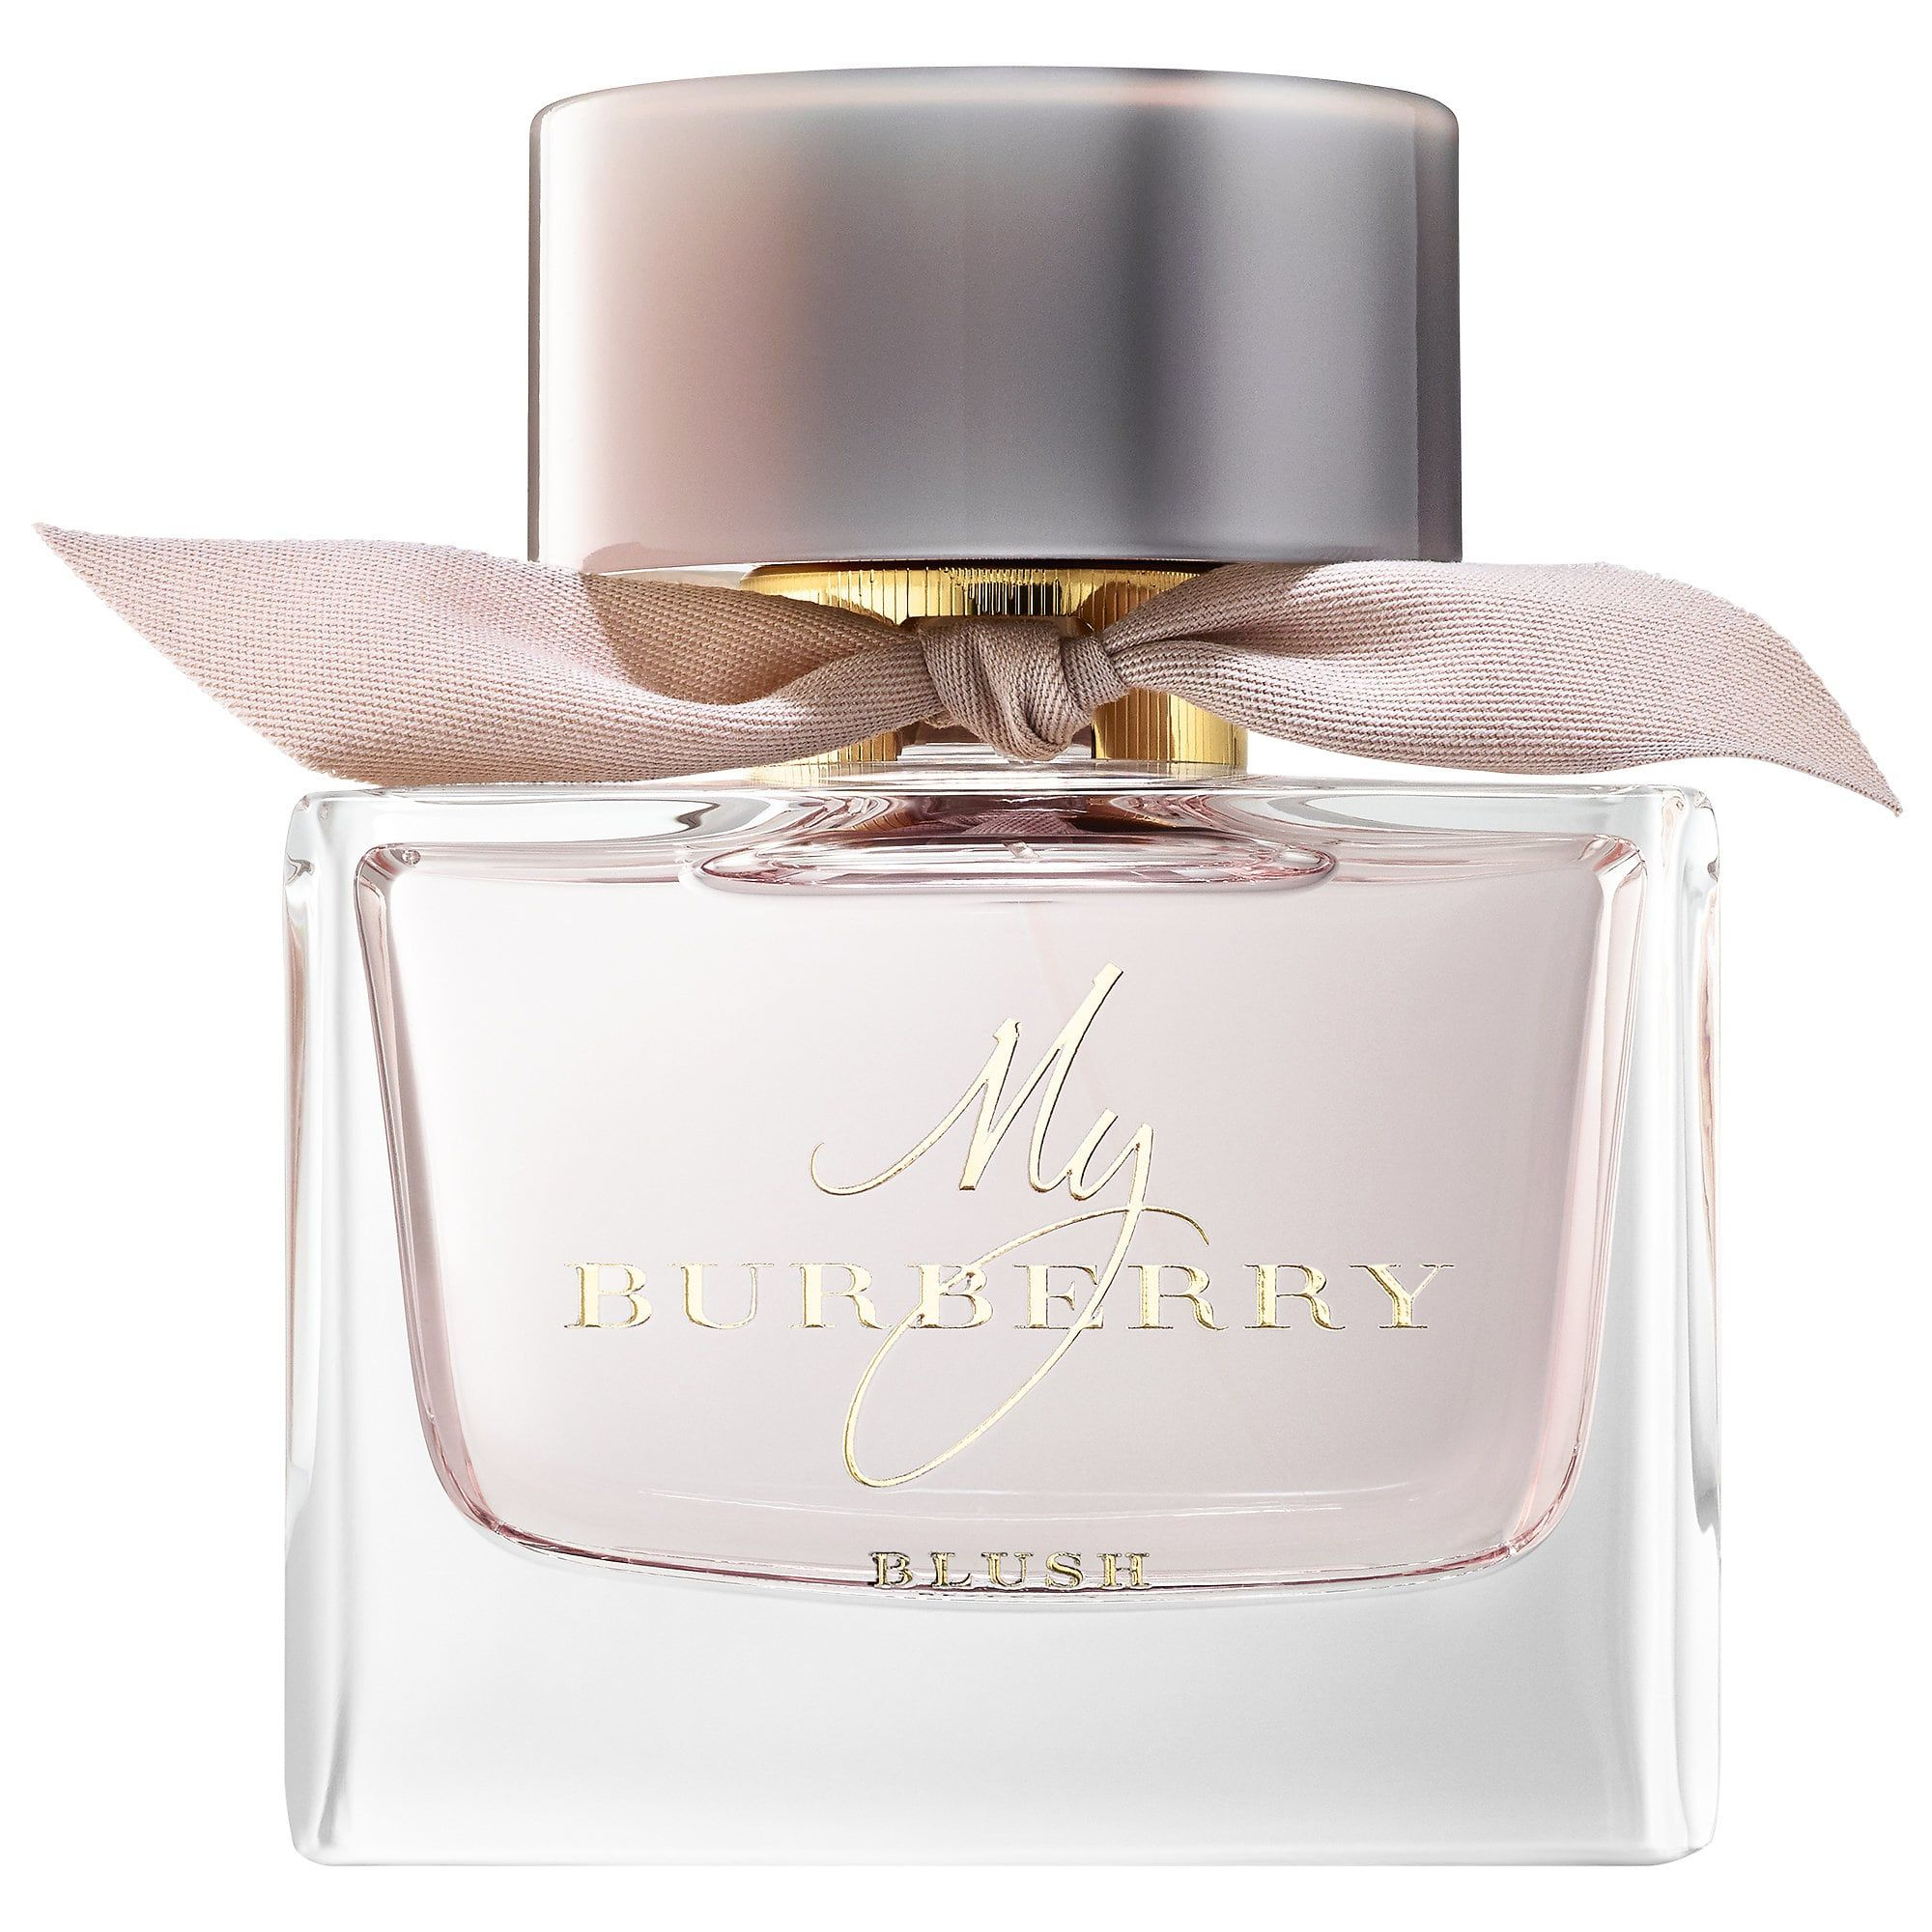 In 2019 Spray 0 Oz Burberry My Blush Parfum 90 Ml 3 Eau De n0wmyvO8N